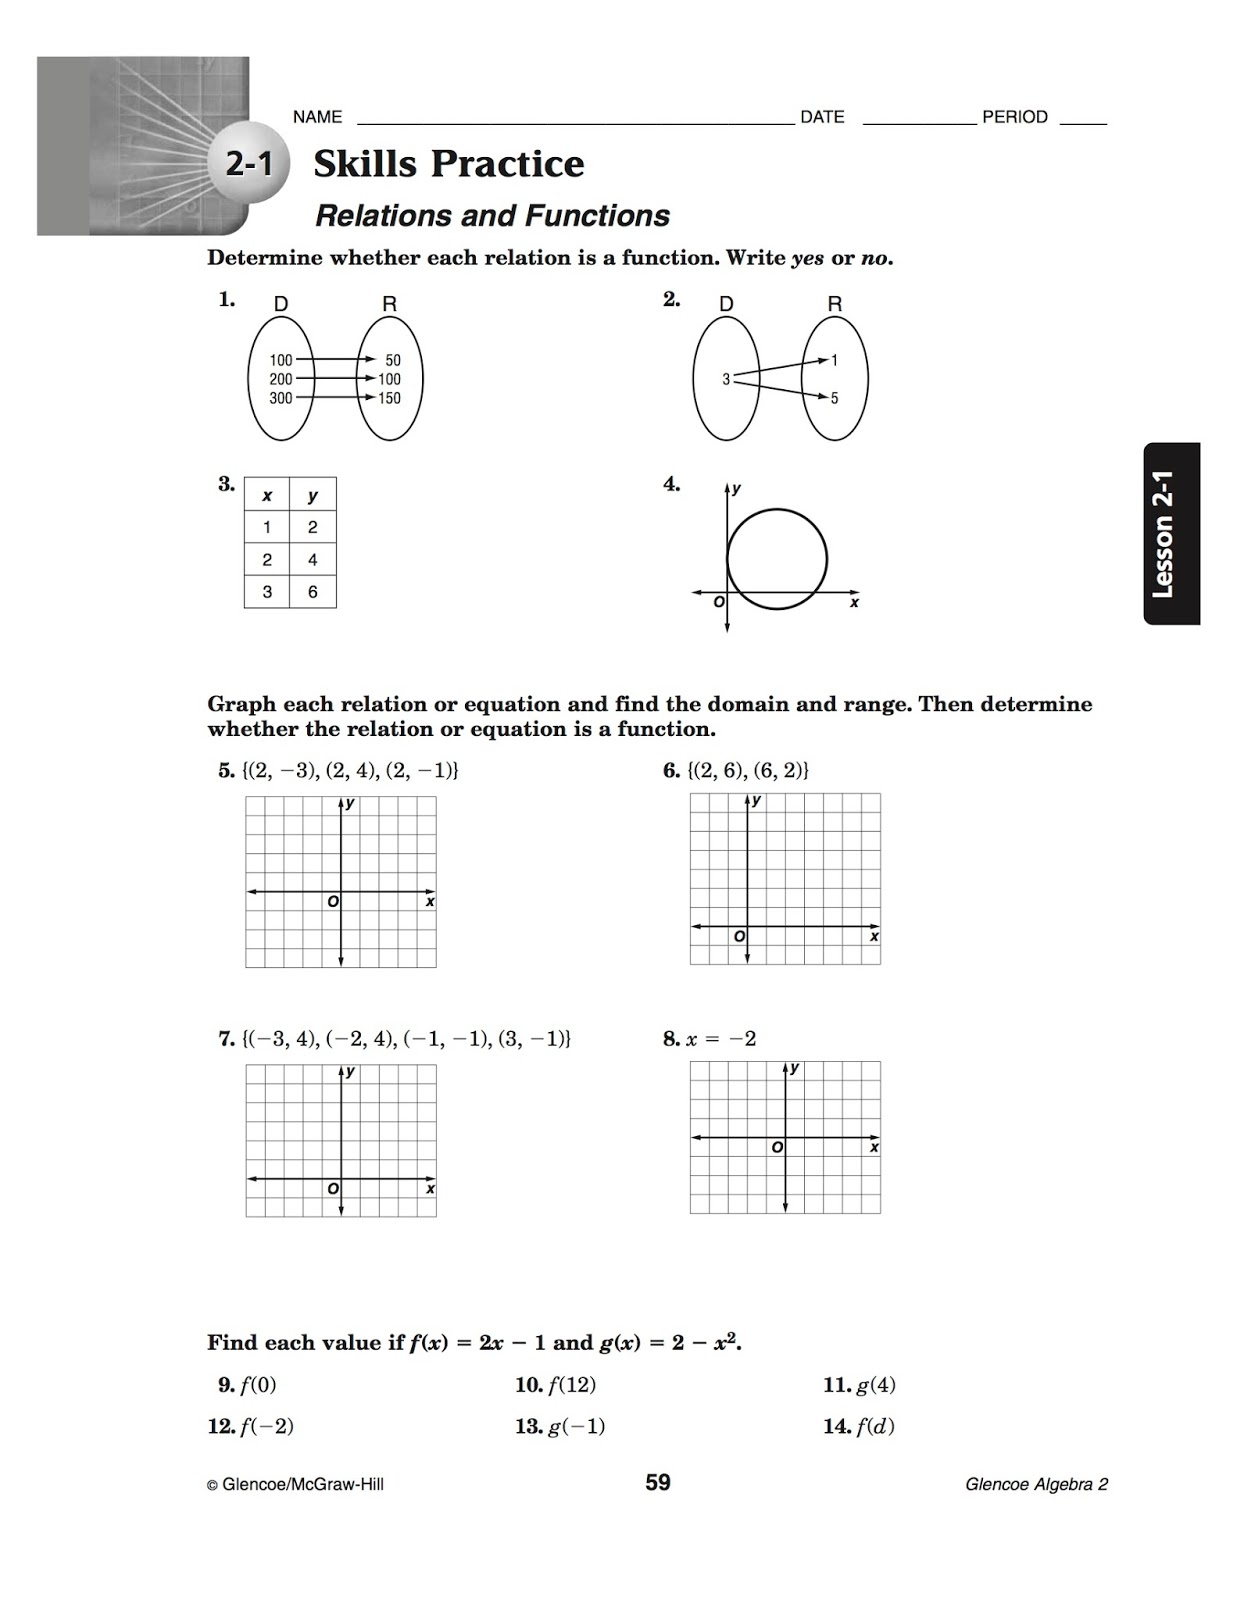 BACS Algebra 2 – Algebra 2 Functions Worksheet